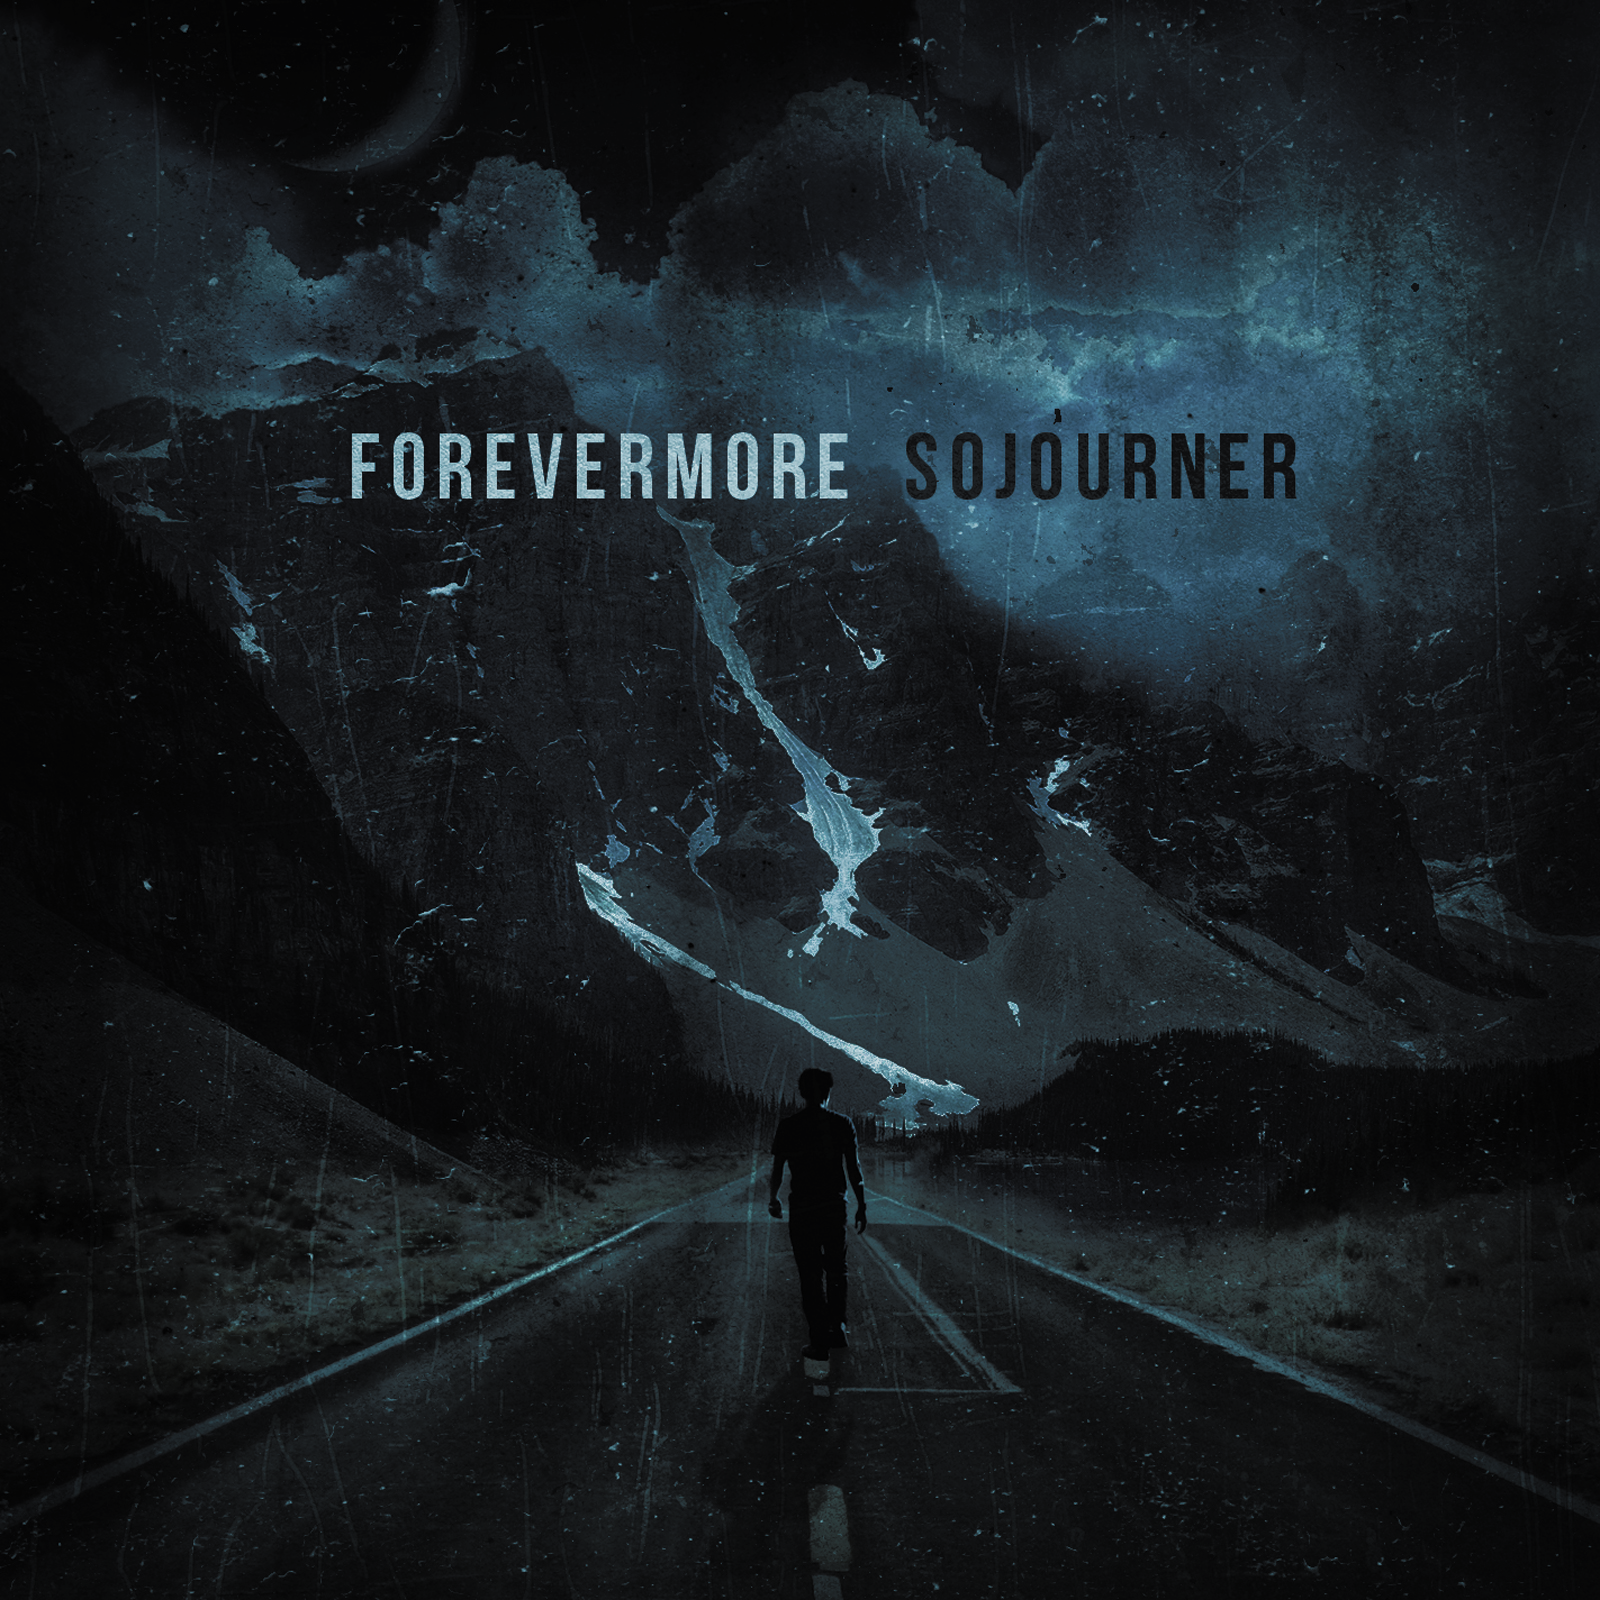 Forevermore 2012